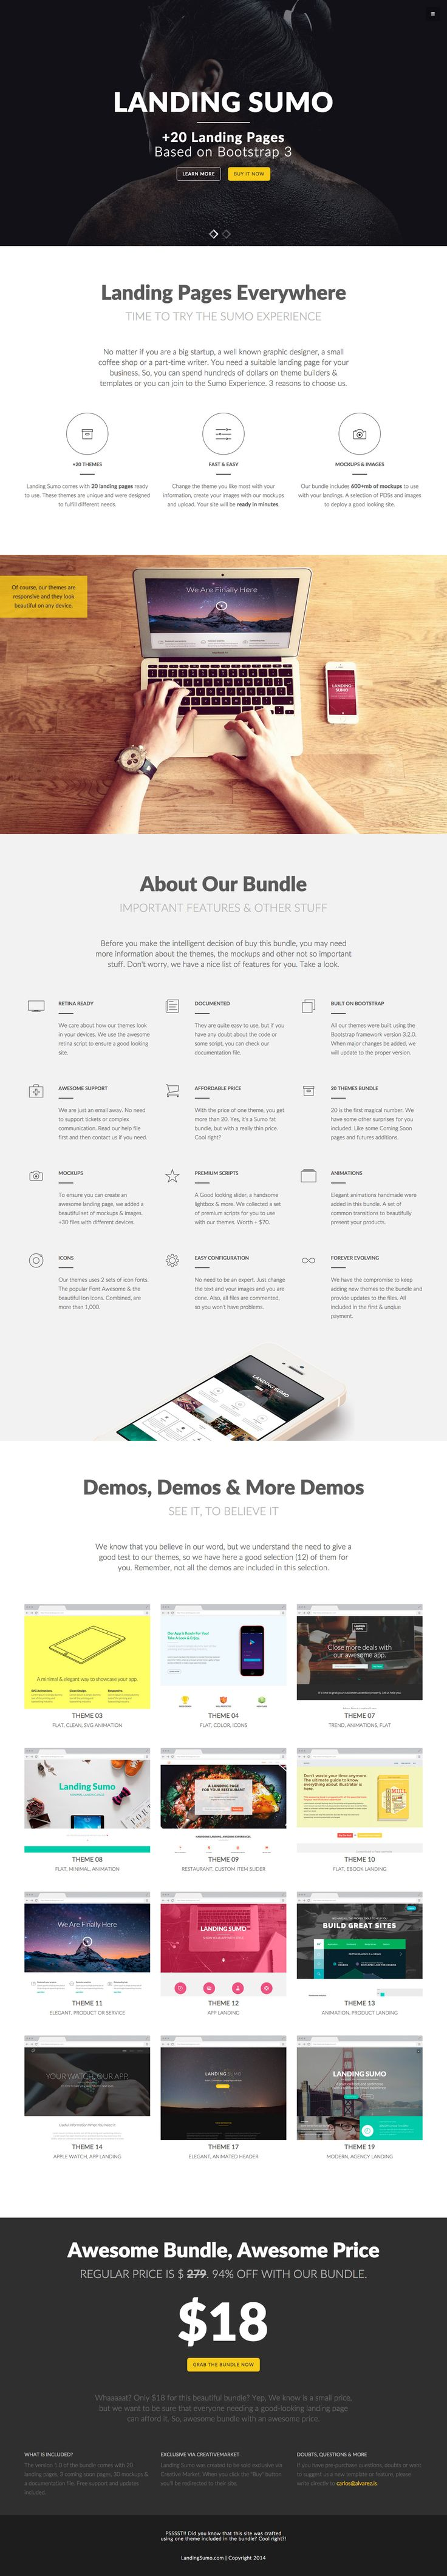 'LandingSumo' is a new template bundle deal from Alvarez Themes featuring 20+ landing page templates. The bundle is currently 94% off, going for only $18 on Creative Market. Man, where to begin... well, they include landing page templates for restaurants, apps, ebooks, products and of course launching soon templates too. All the templates are responsive and actually decent looking. A lovely touch too is they used a template within the bundle to create this actual landing page.